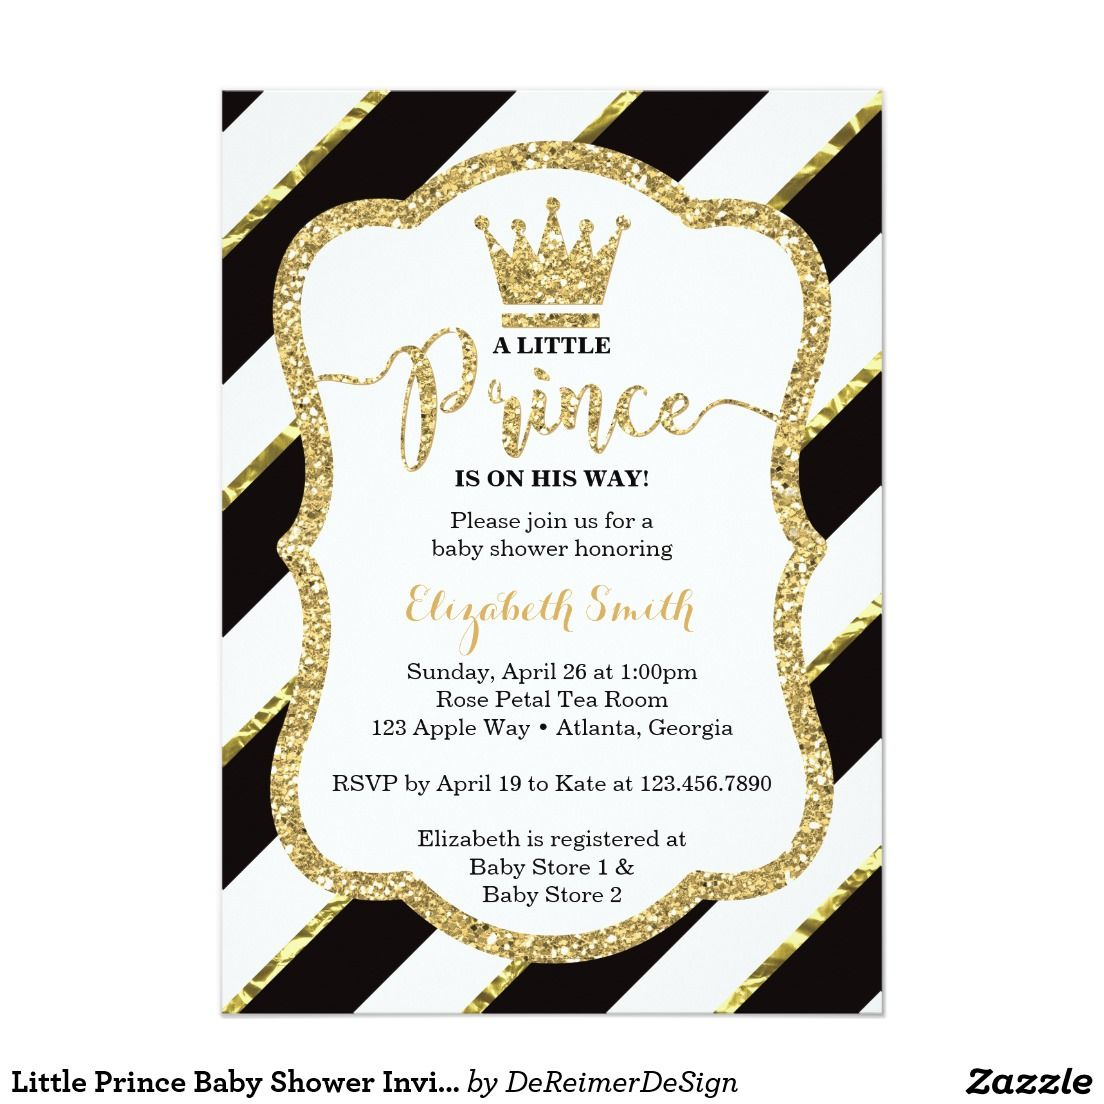 Little Prince Baby Shower Invitation, Black, Gold Card | Mom and ...